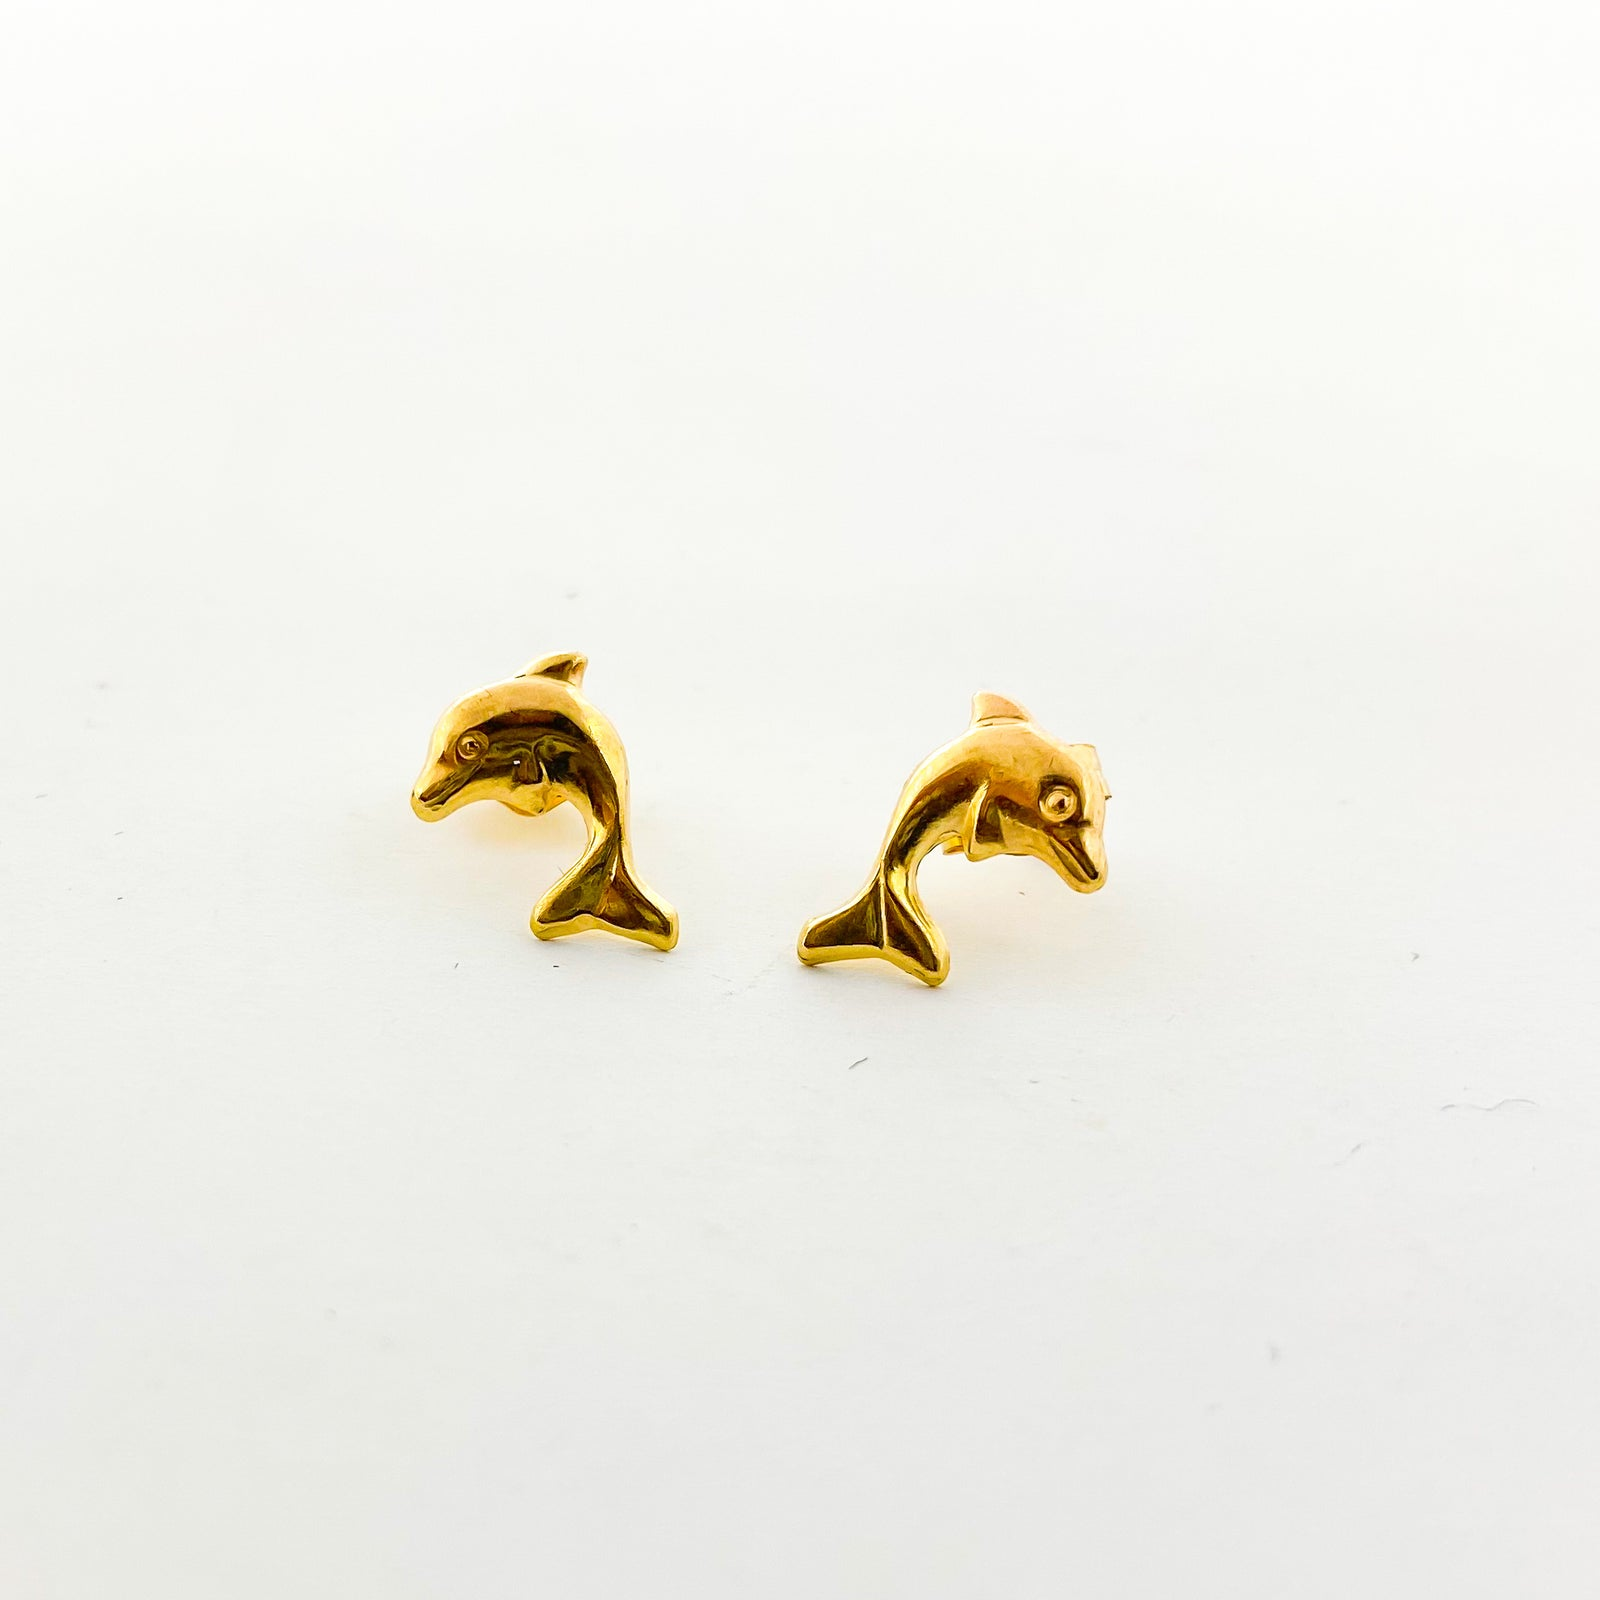 DOLPHIN STUD EARRINGS | 14K GOLD-FILLED